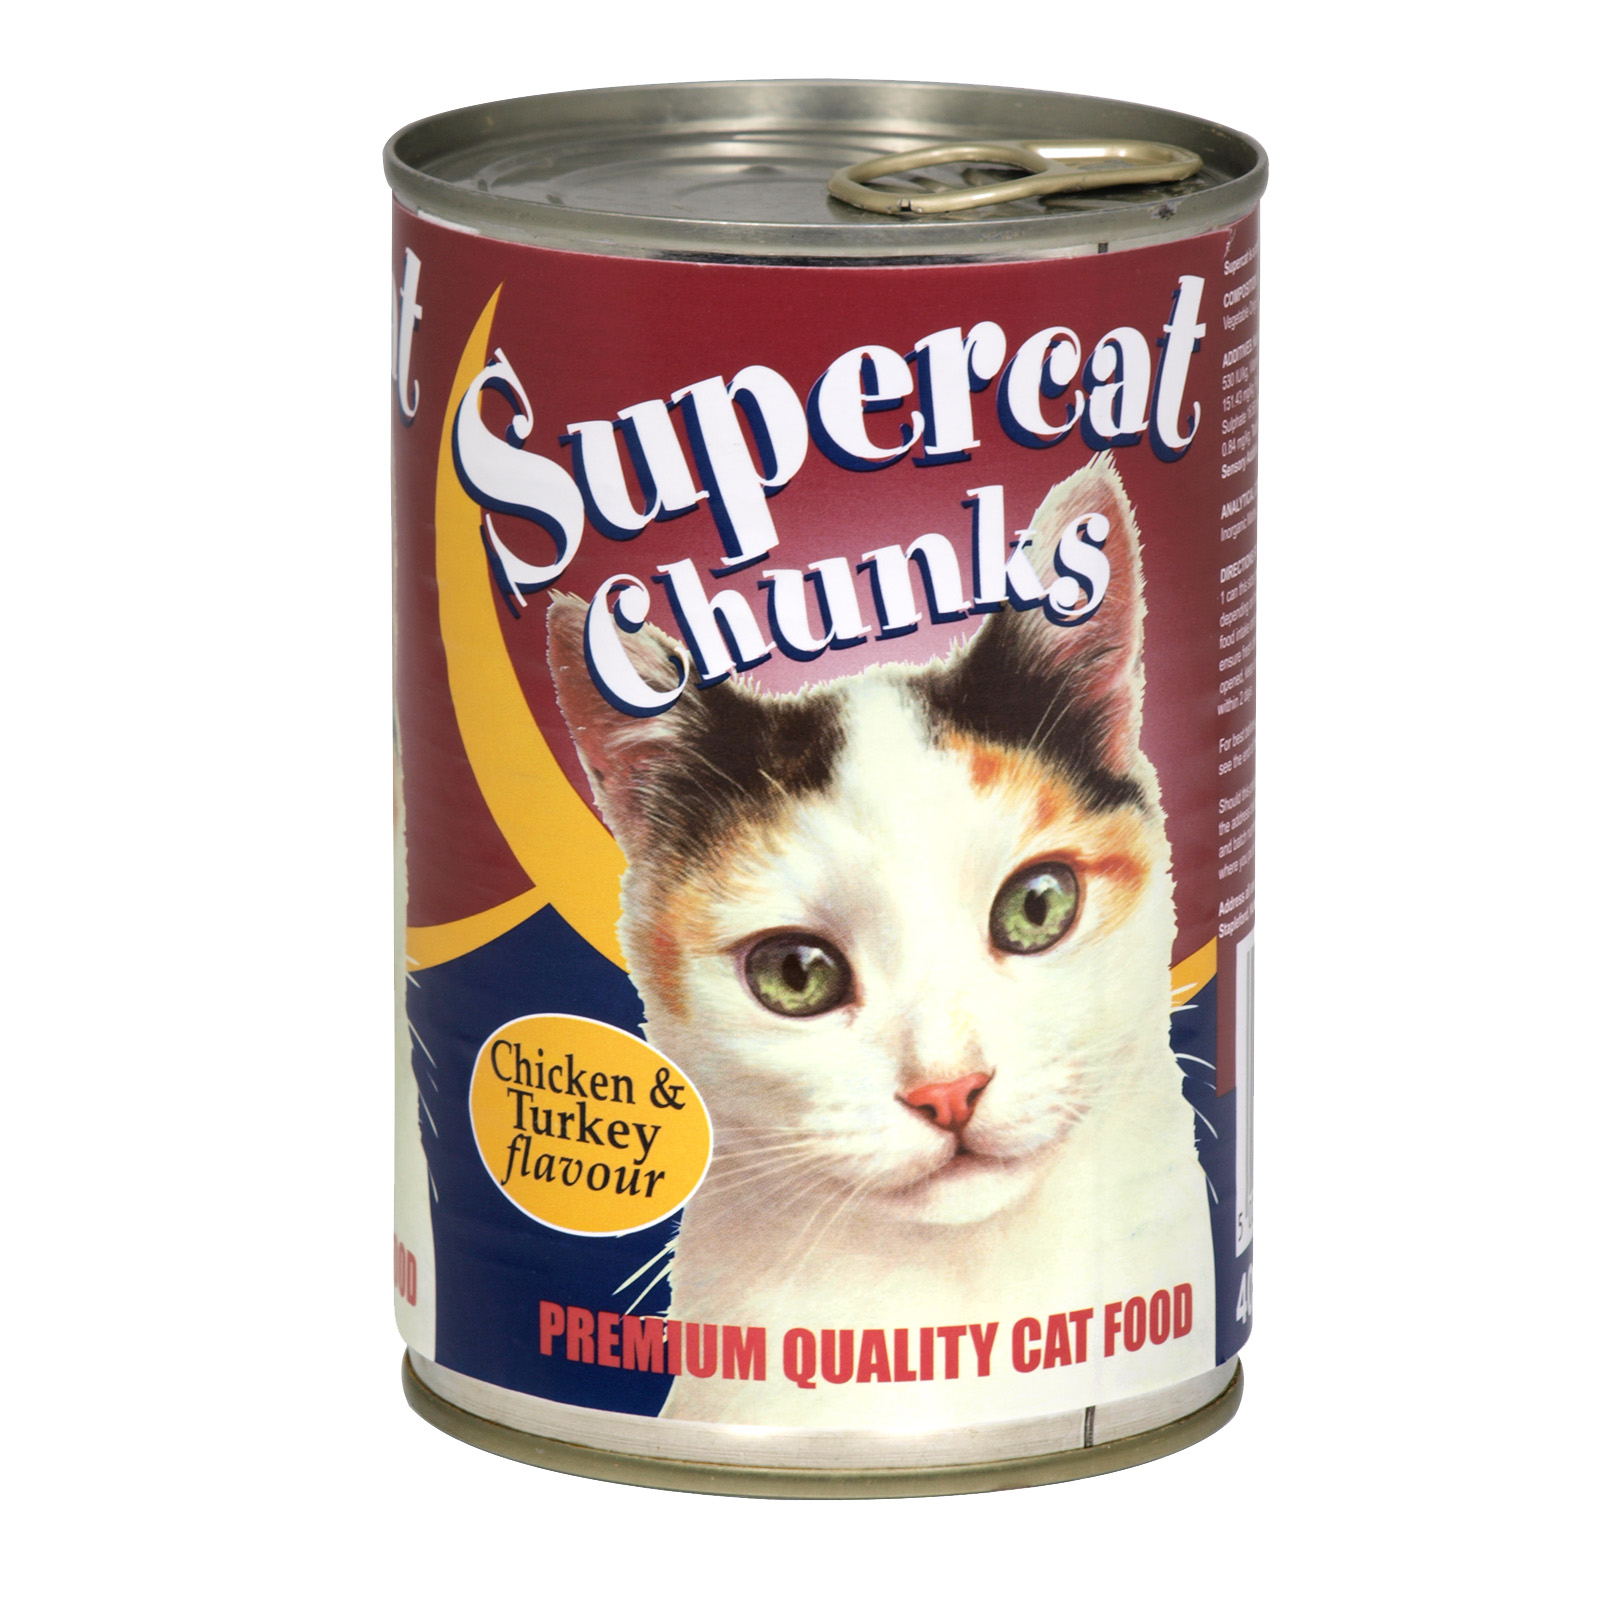 SUPERCAT CHUNKS CHICKEN & TURKEY 400GM X12